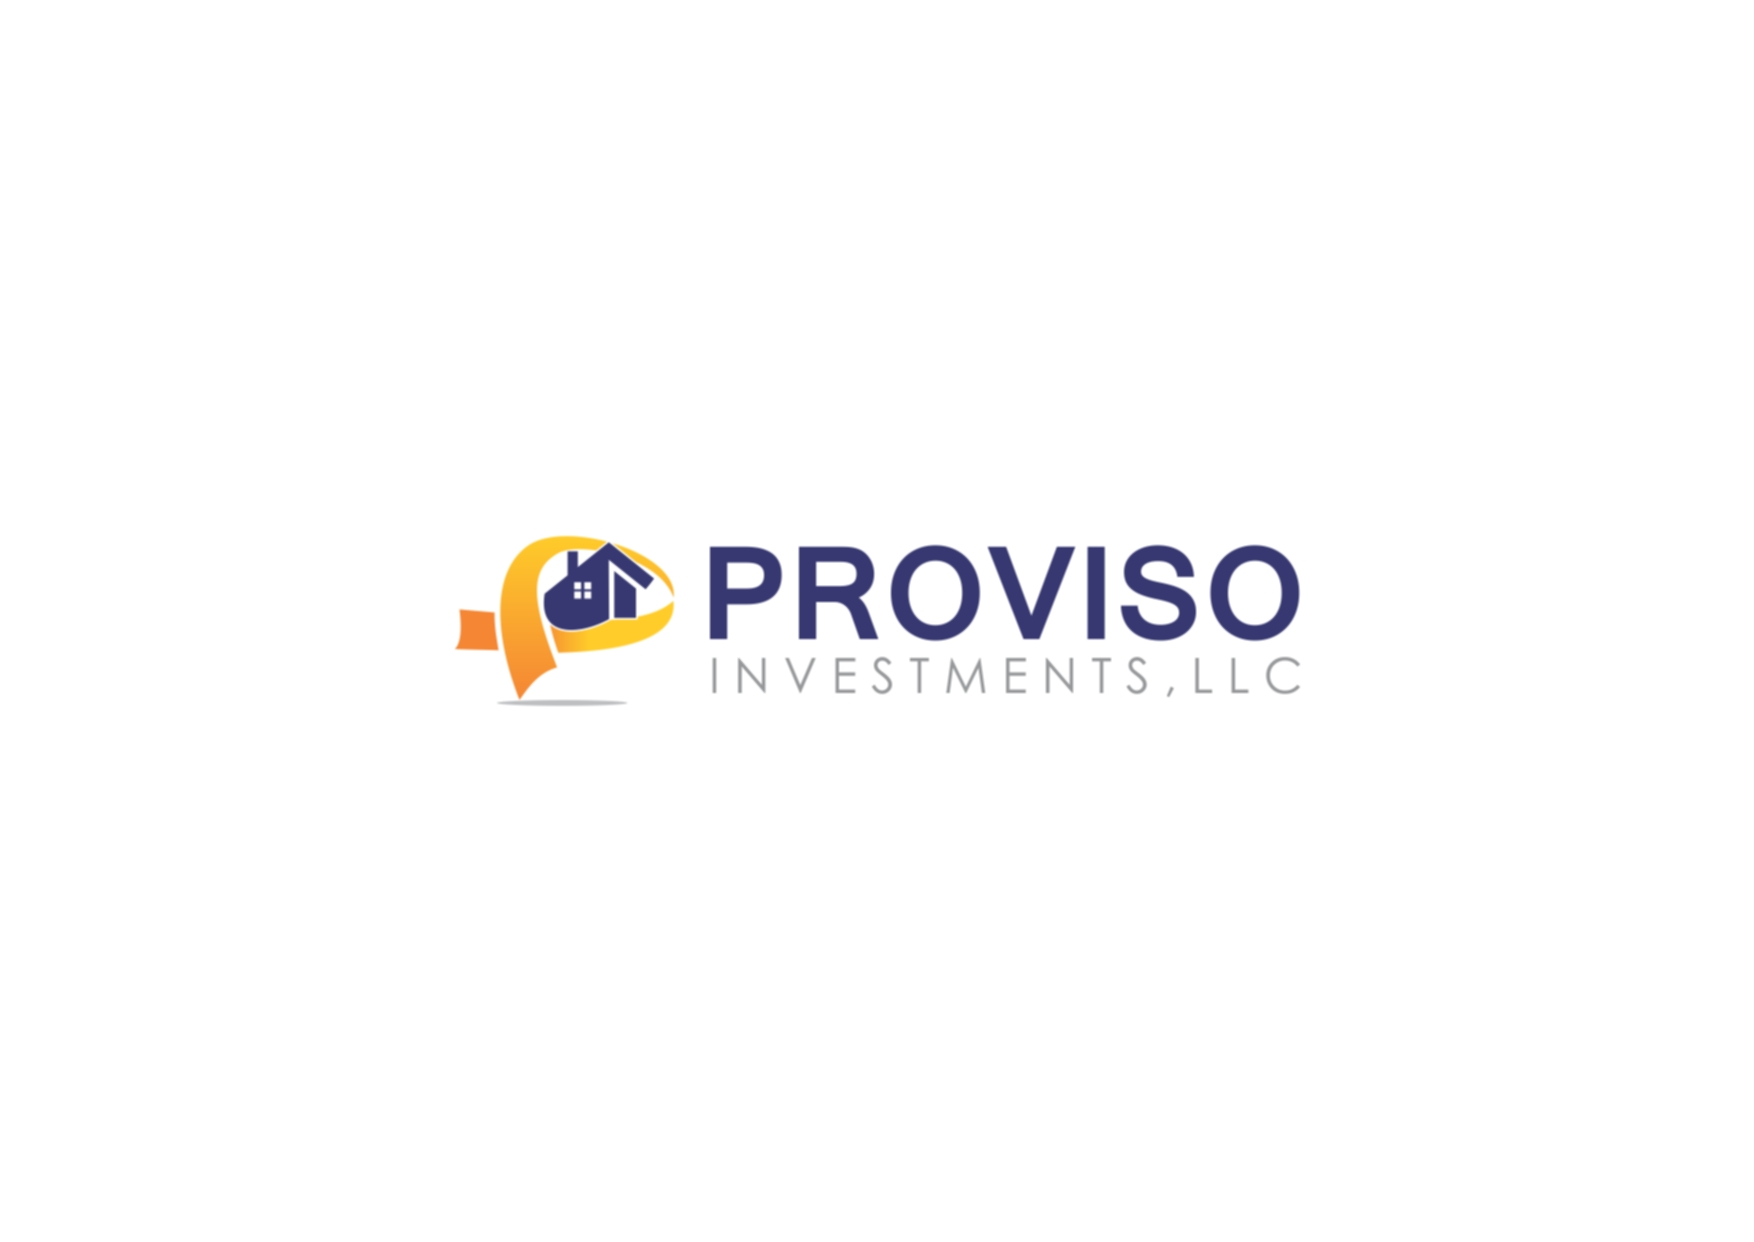 Logo Design by Private User - Entry No. 43 in the Logo Design Contest New Logo Design for PROVISO INVESTMENTS,LLC.